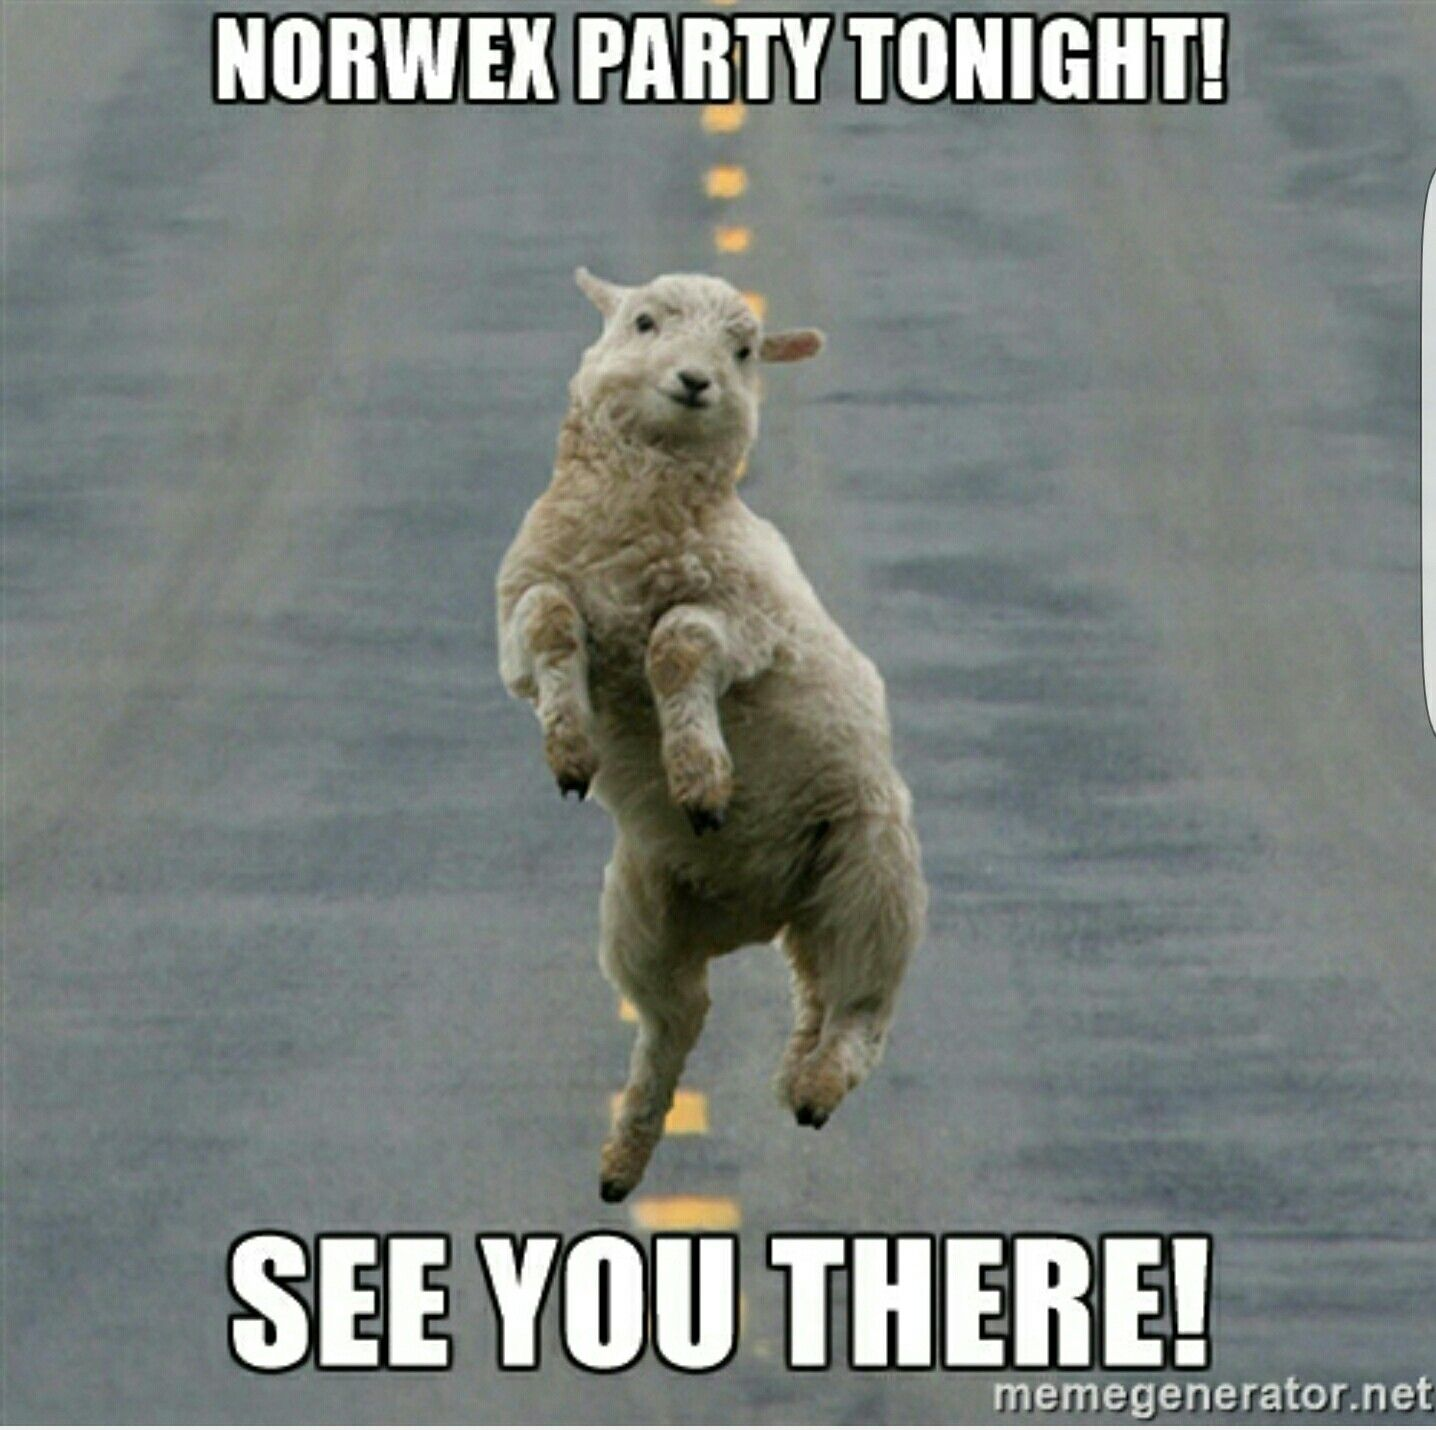 Pin by Sarah Eisele on Norwex Facebook Party Funny